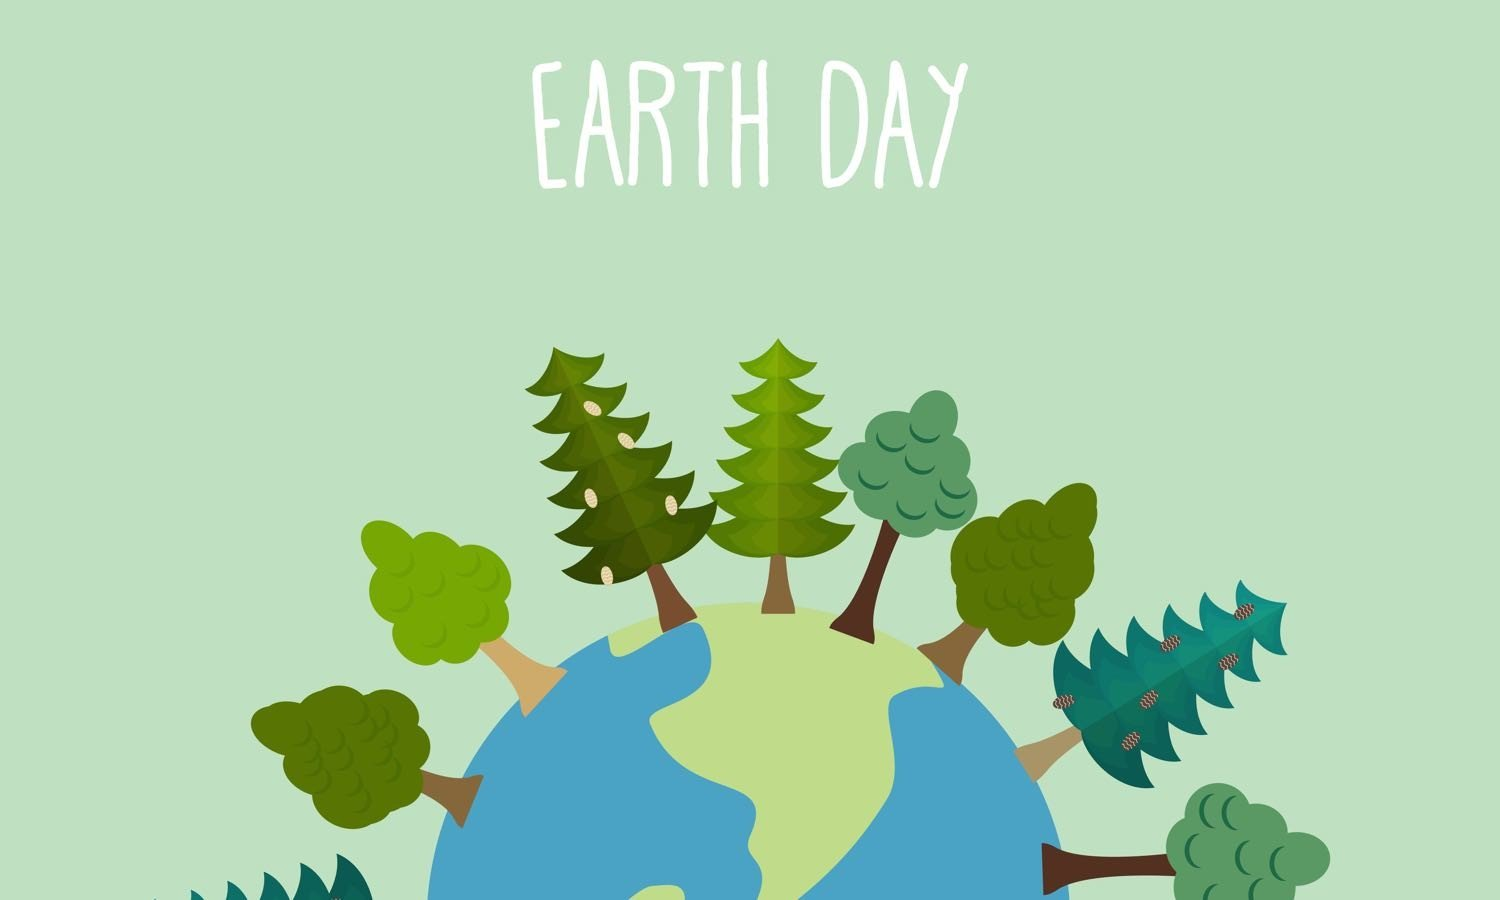 Earth Day - EARTH DAY